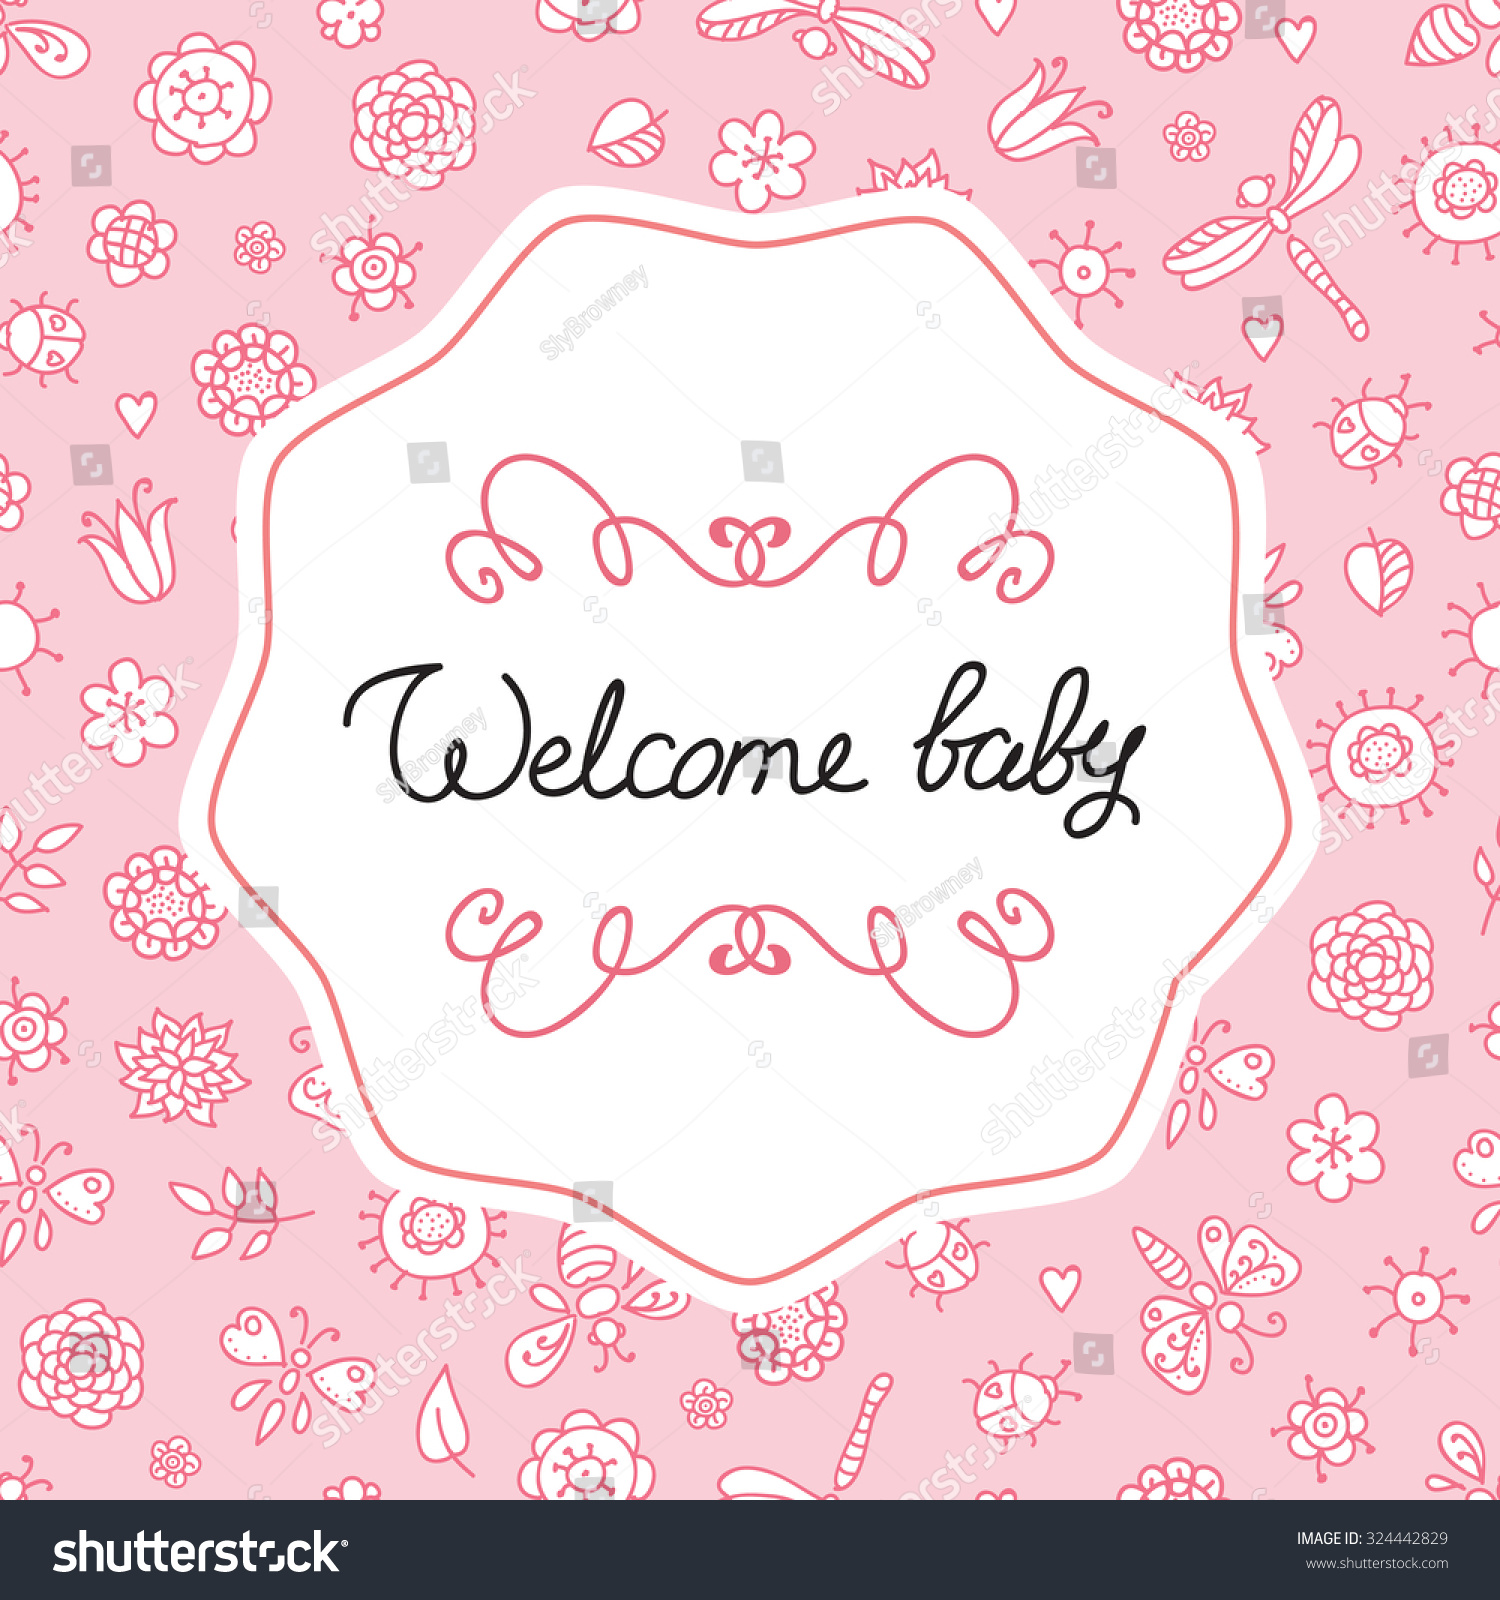 Welcome Baby Cute Baby Card Pink Stock Vector 324442829 - Shutterstock